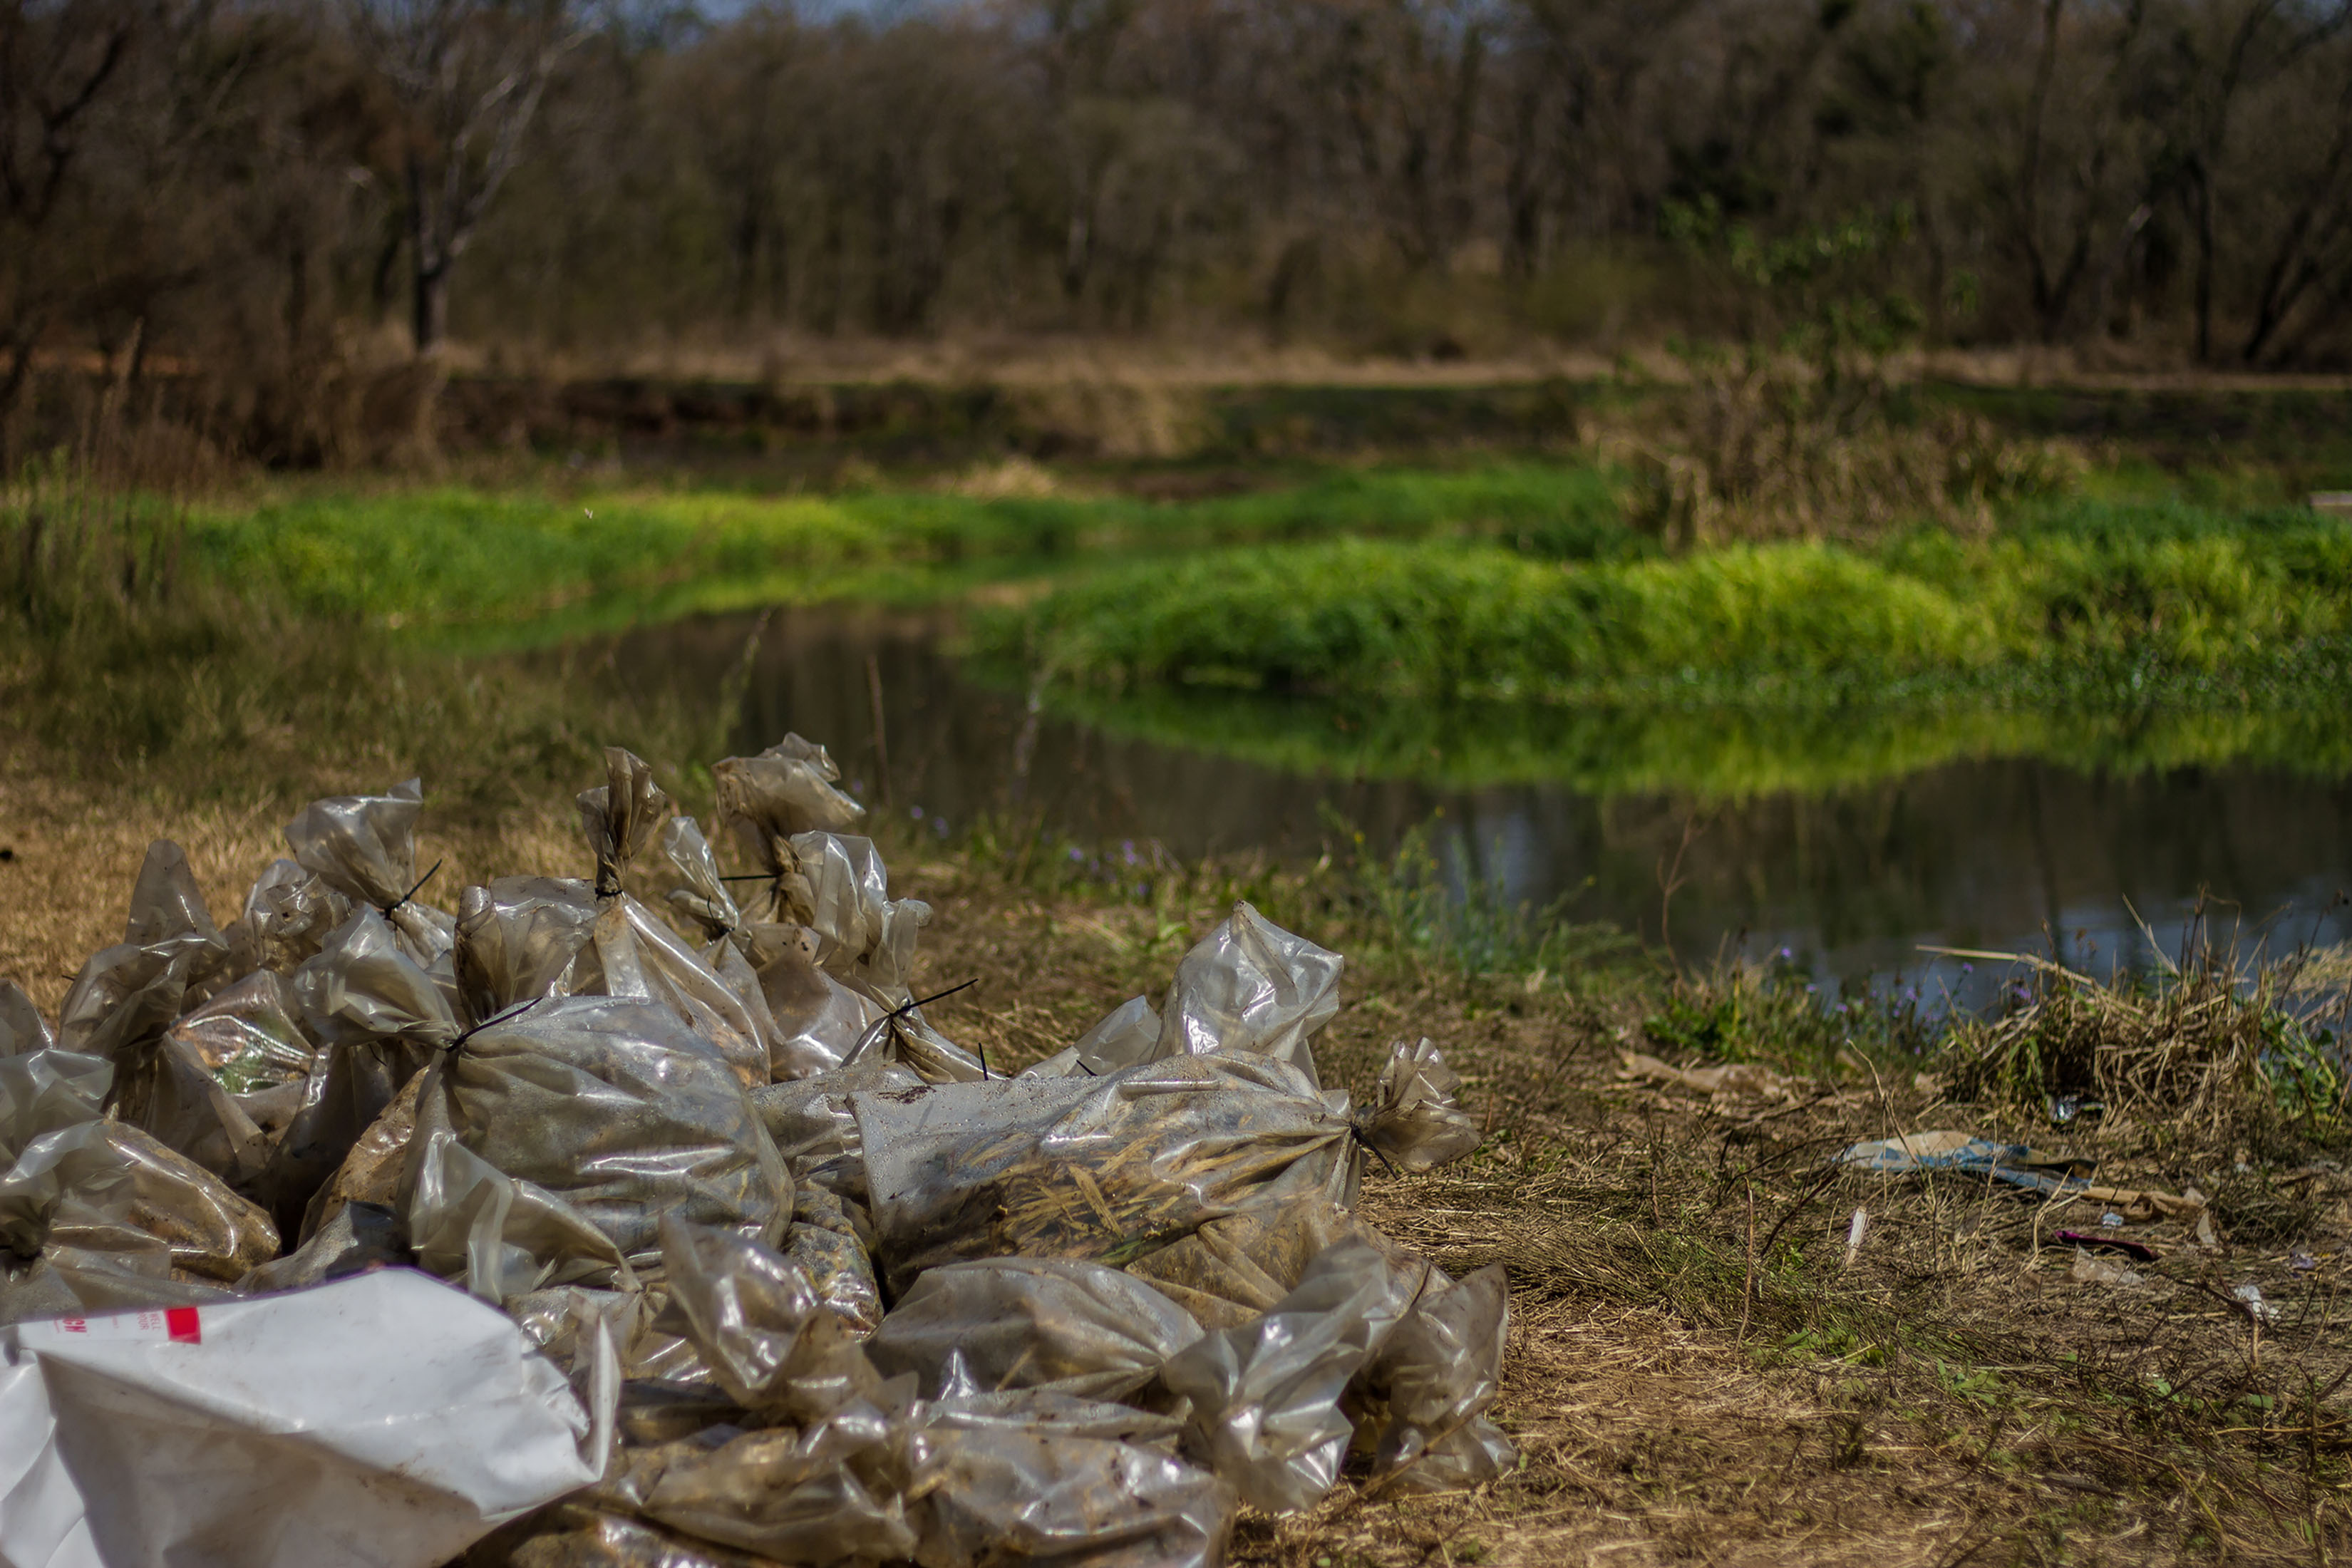 23 August 2019: Pollutants and dead fish collected in plastic bags near the Dusi River at Ashburton in Pietermaritzburg during a clean-up operation.